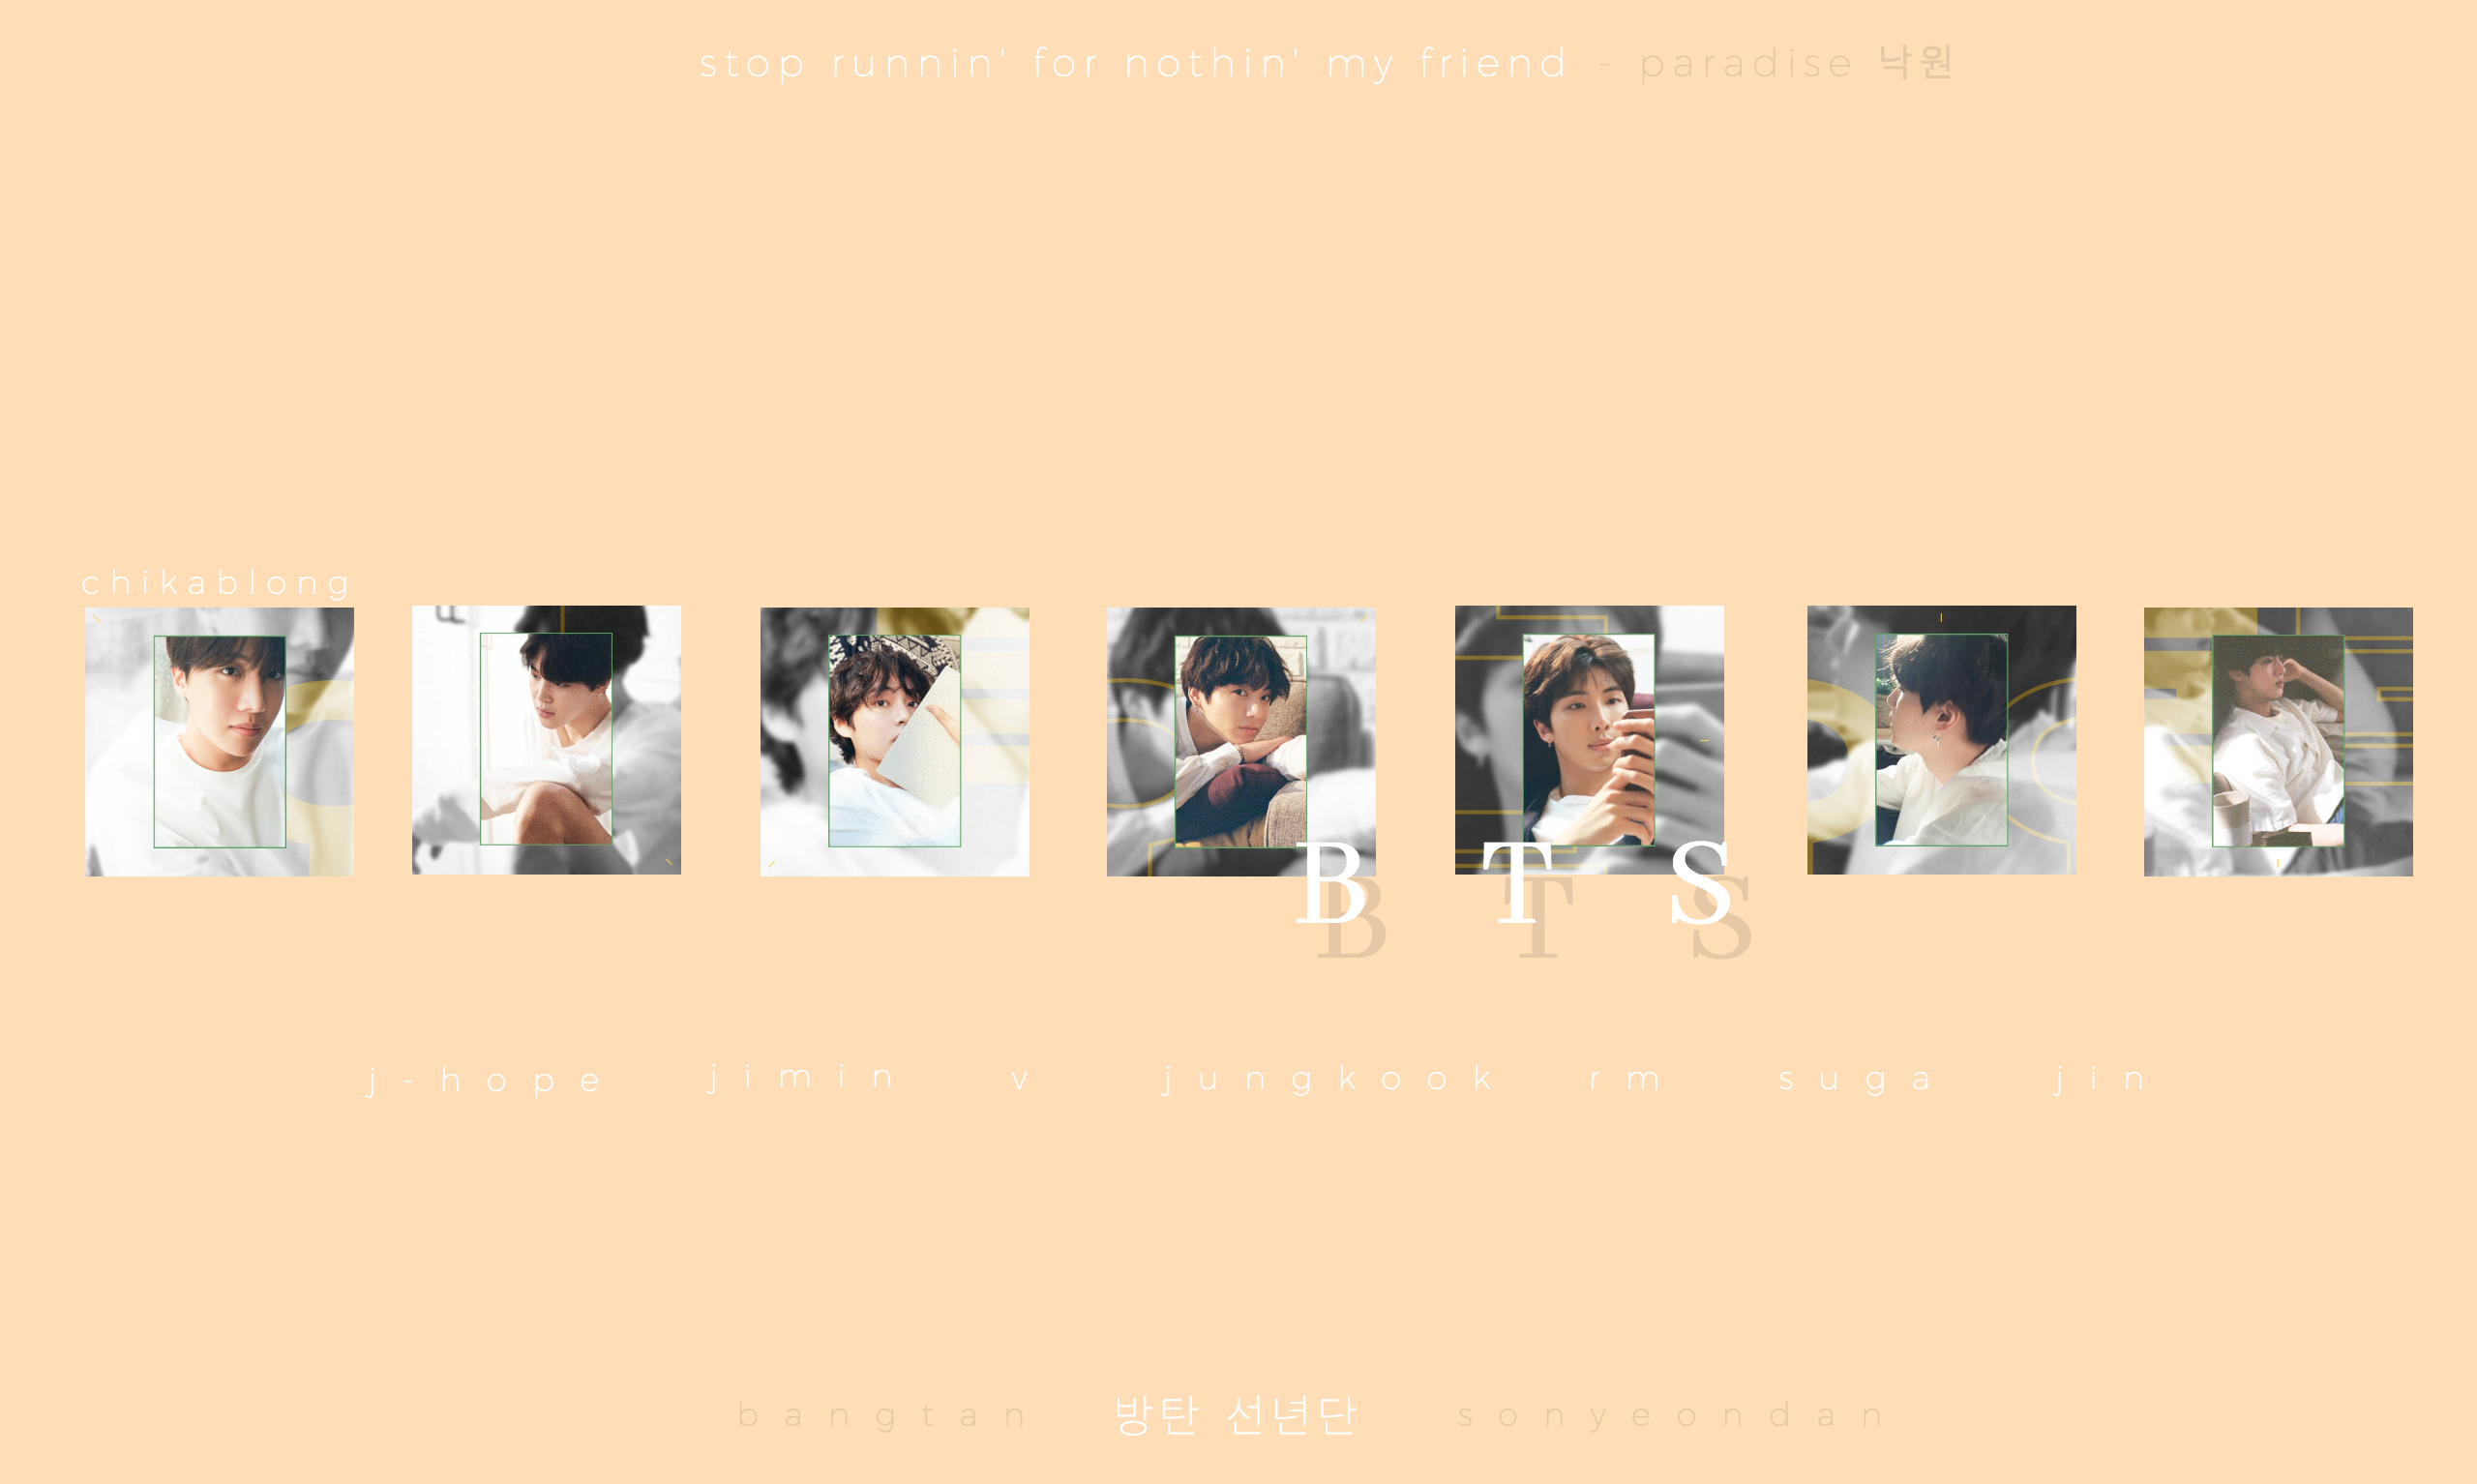 Bts Bangtansonyeondan Designideas Desktop Wallpaper Soft Pastel 1280x720 Photo Wallpaper Bts